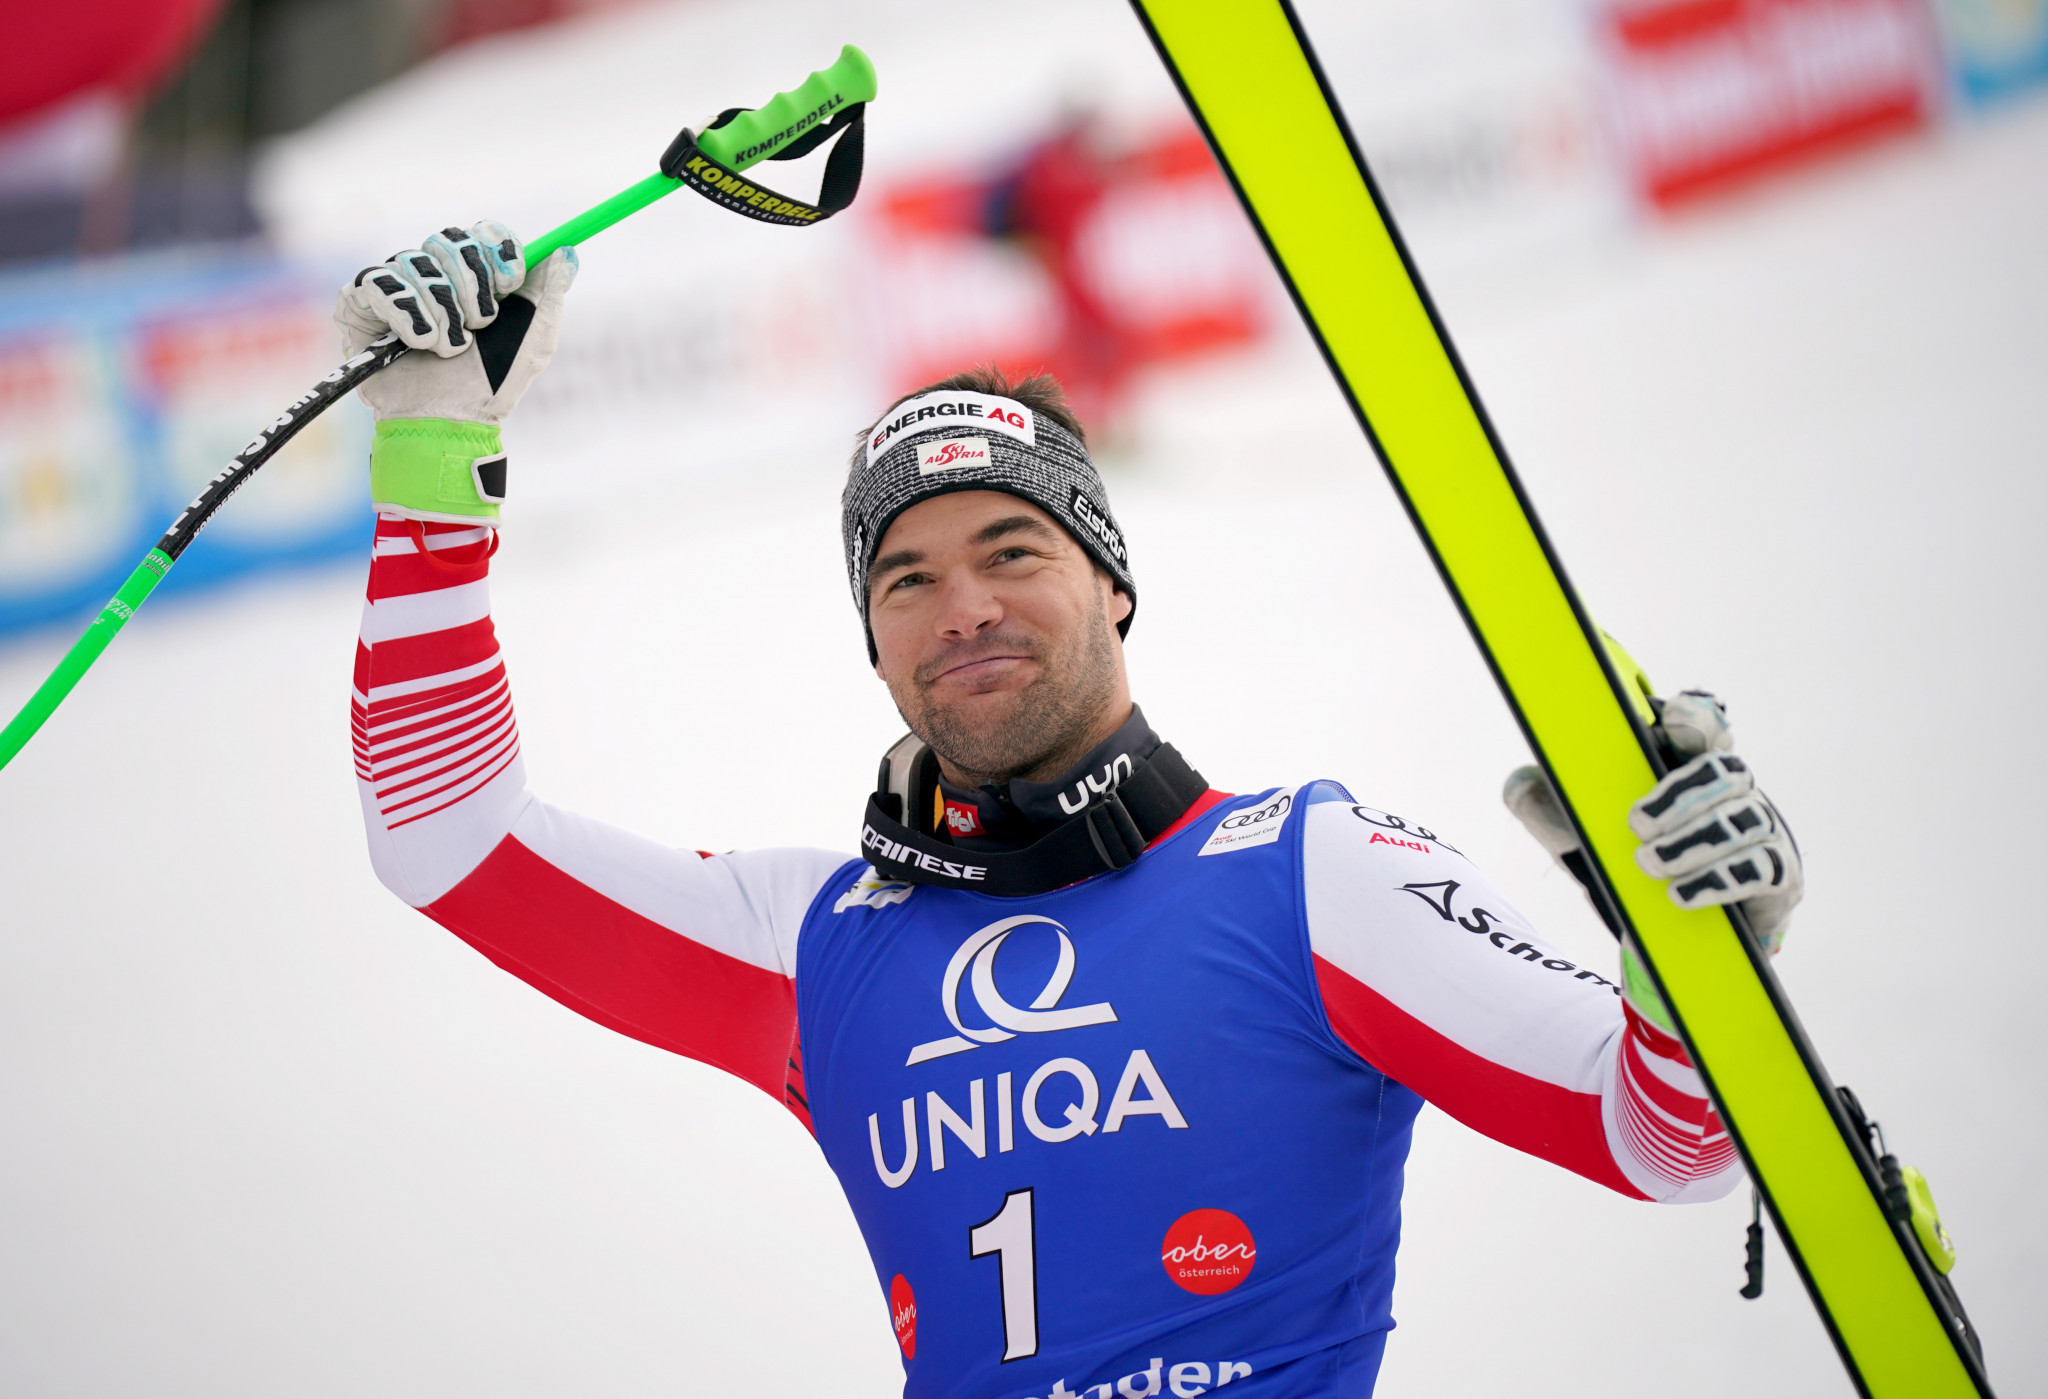 Kriechmayr delights home crowd with victory in FIS Alpine Skiing World Cup in Hinterstoder